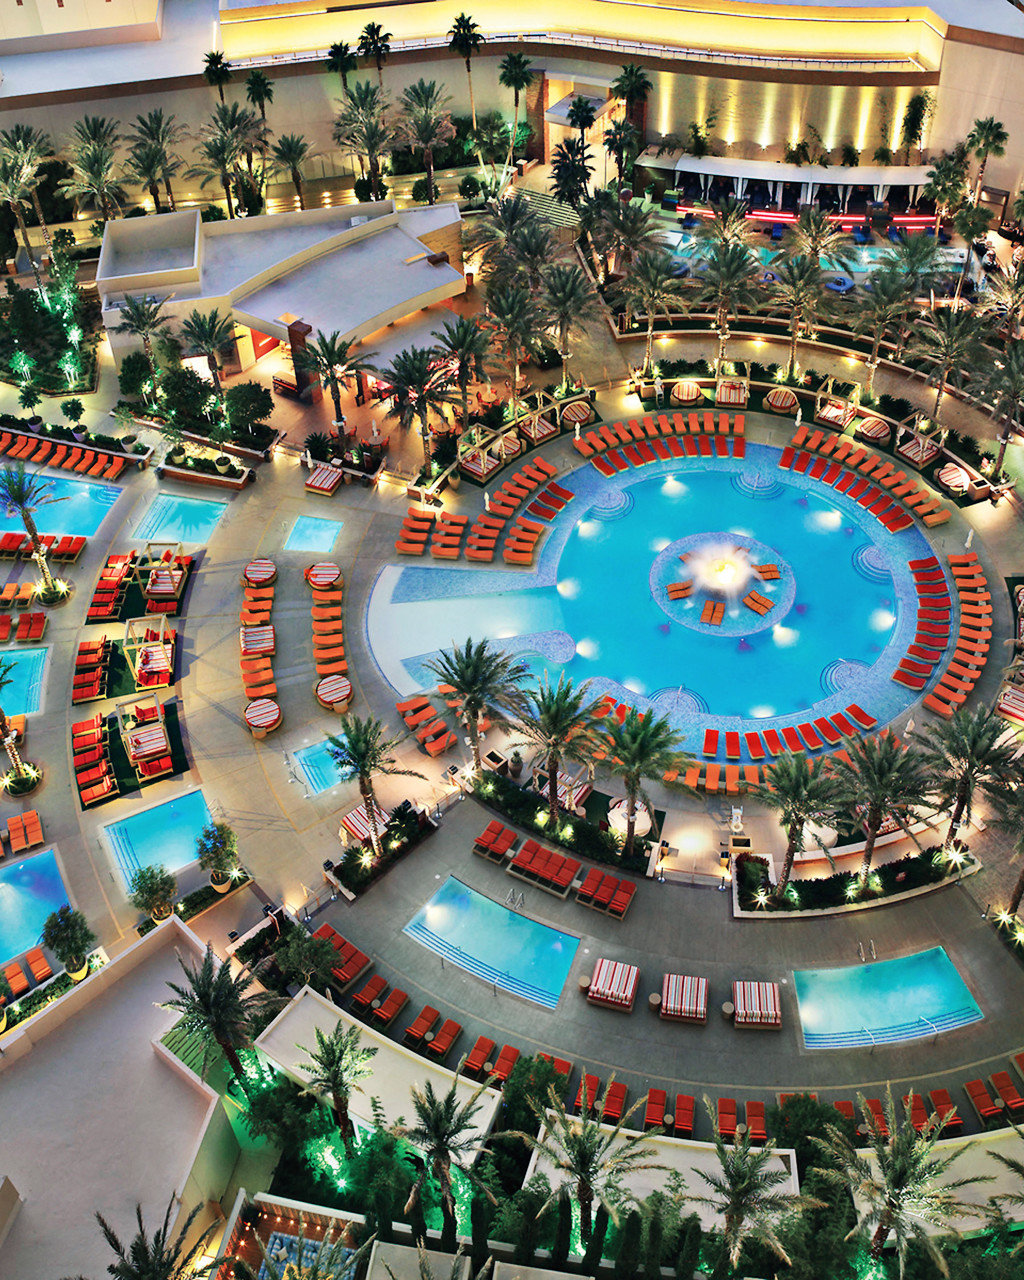 City Lounge Nightlife Play Pool Resort leisure Water park amusement park shopping mall colorful surrounded